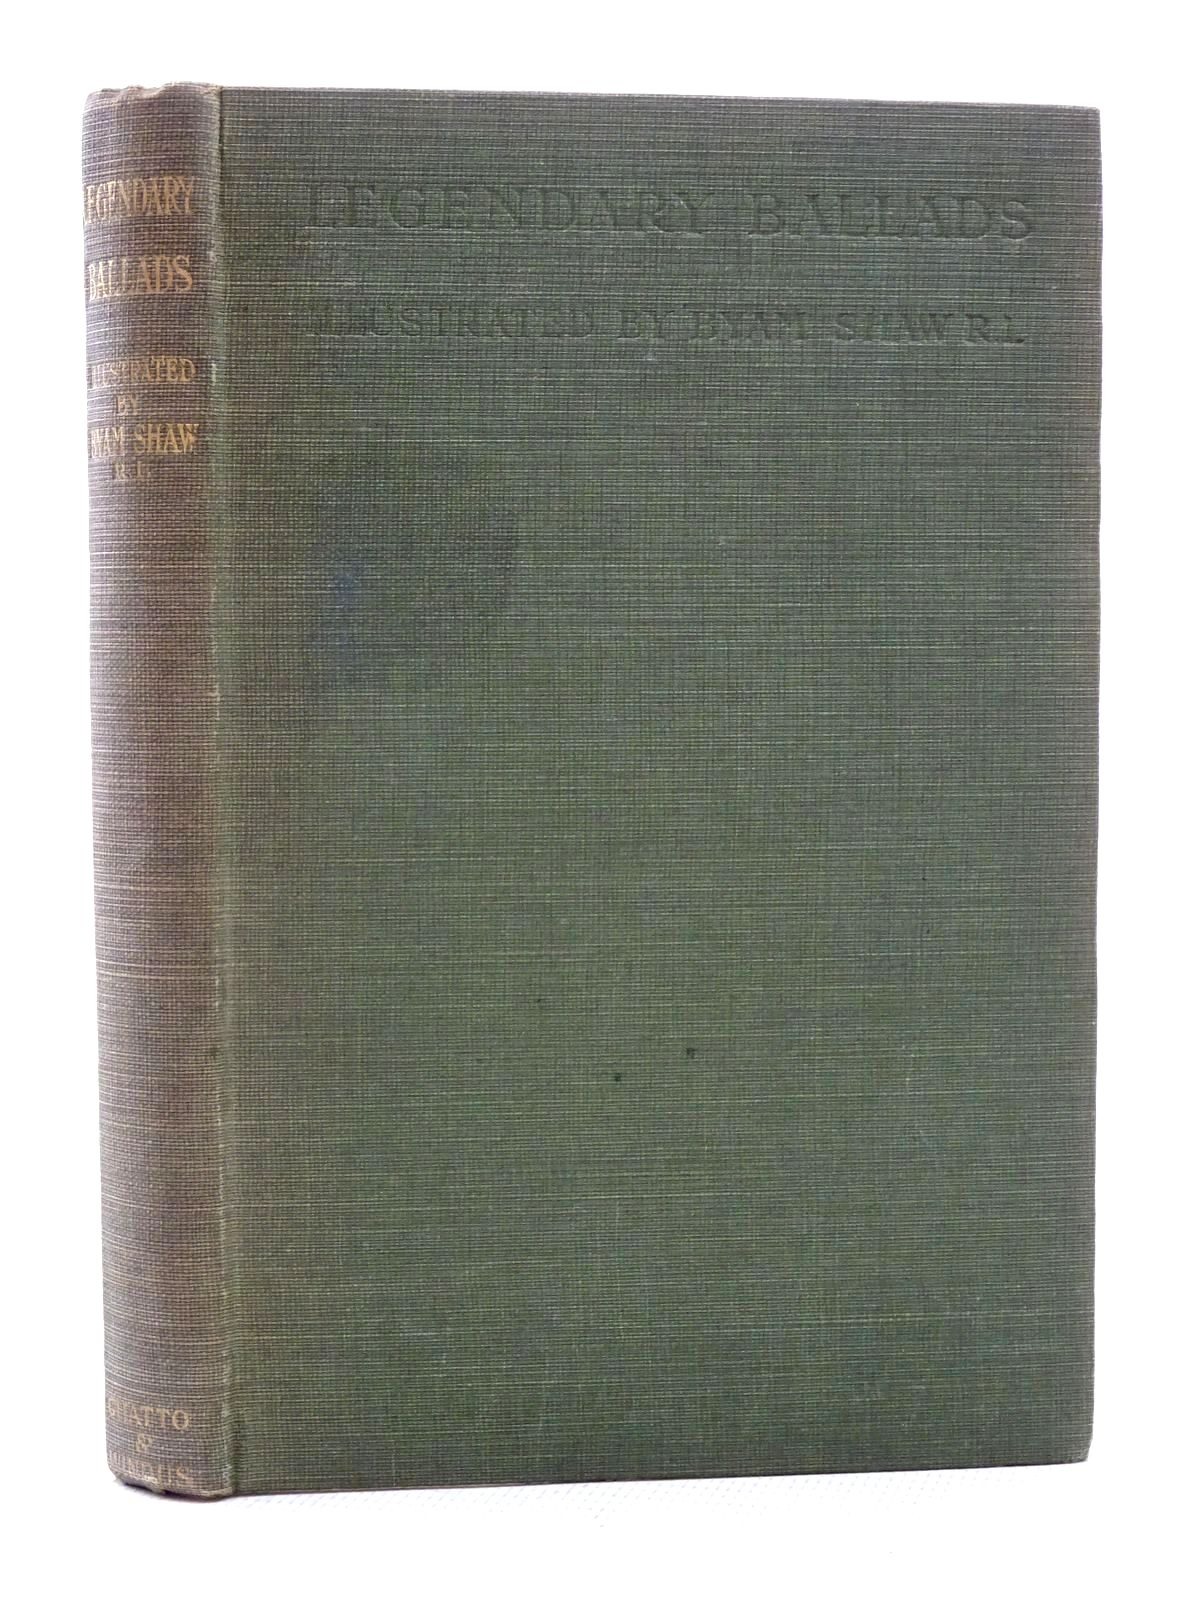 Photo of LEGENDARY BALLADS written by Sidgwick, Frank illustrated by Shaw, Byam published by Chatto & Windus (STOCK CODE: 2125318)  for sale by Stella & Rose's Books